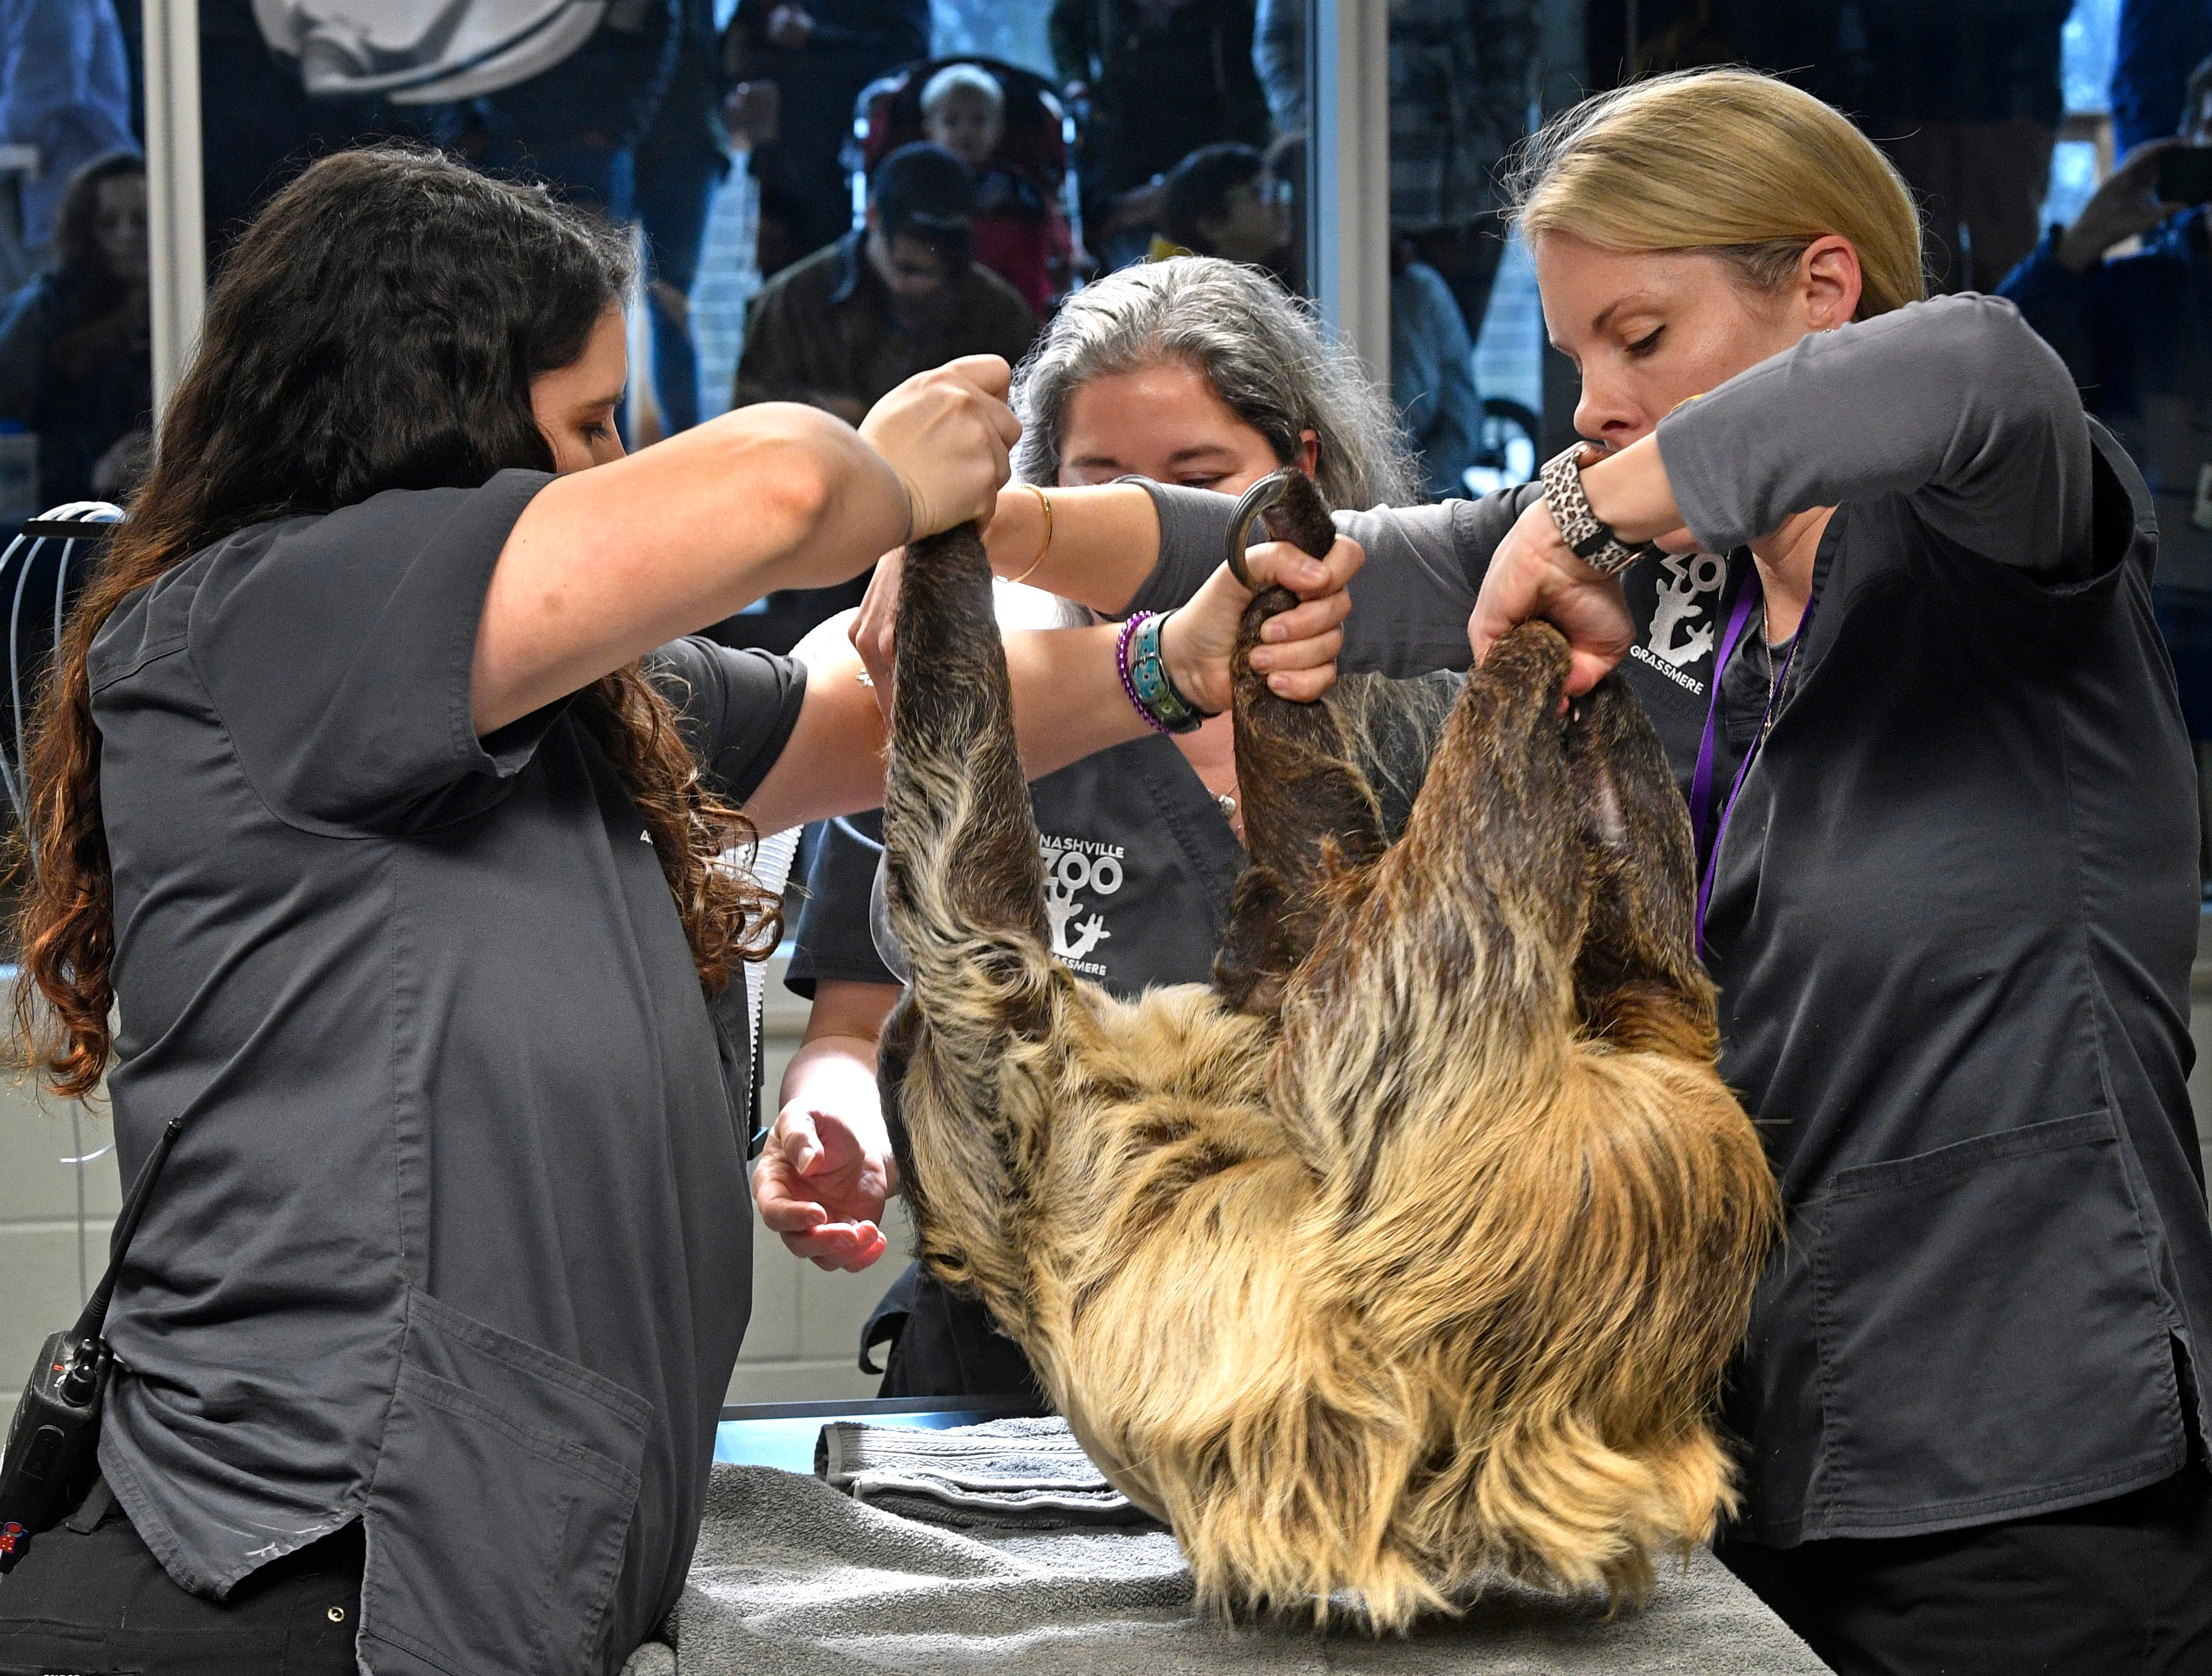 Staff place a sloth on a table to be examined at the new 23,000 square-foot HCA Healthcare Veterinary Center at the Nashville Zoo.